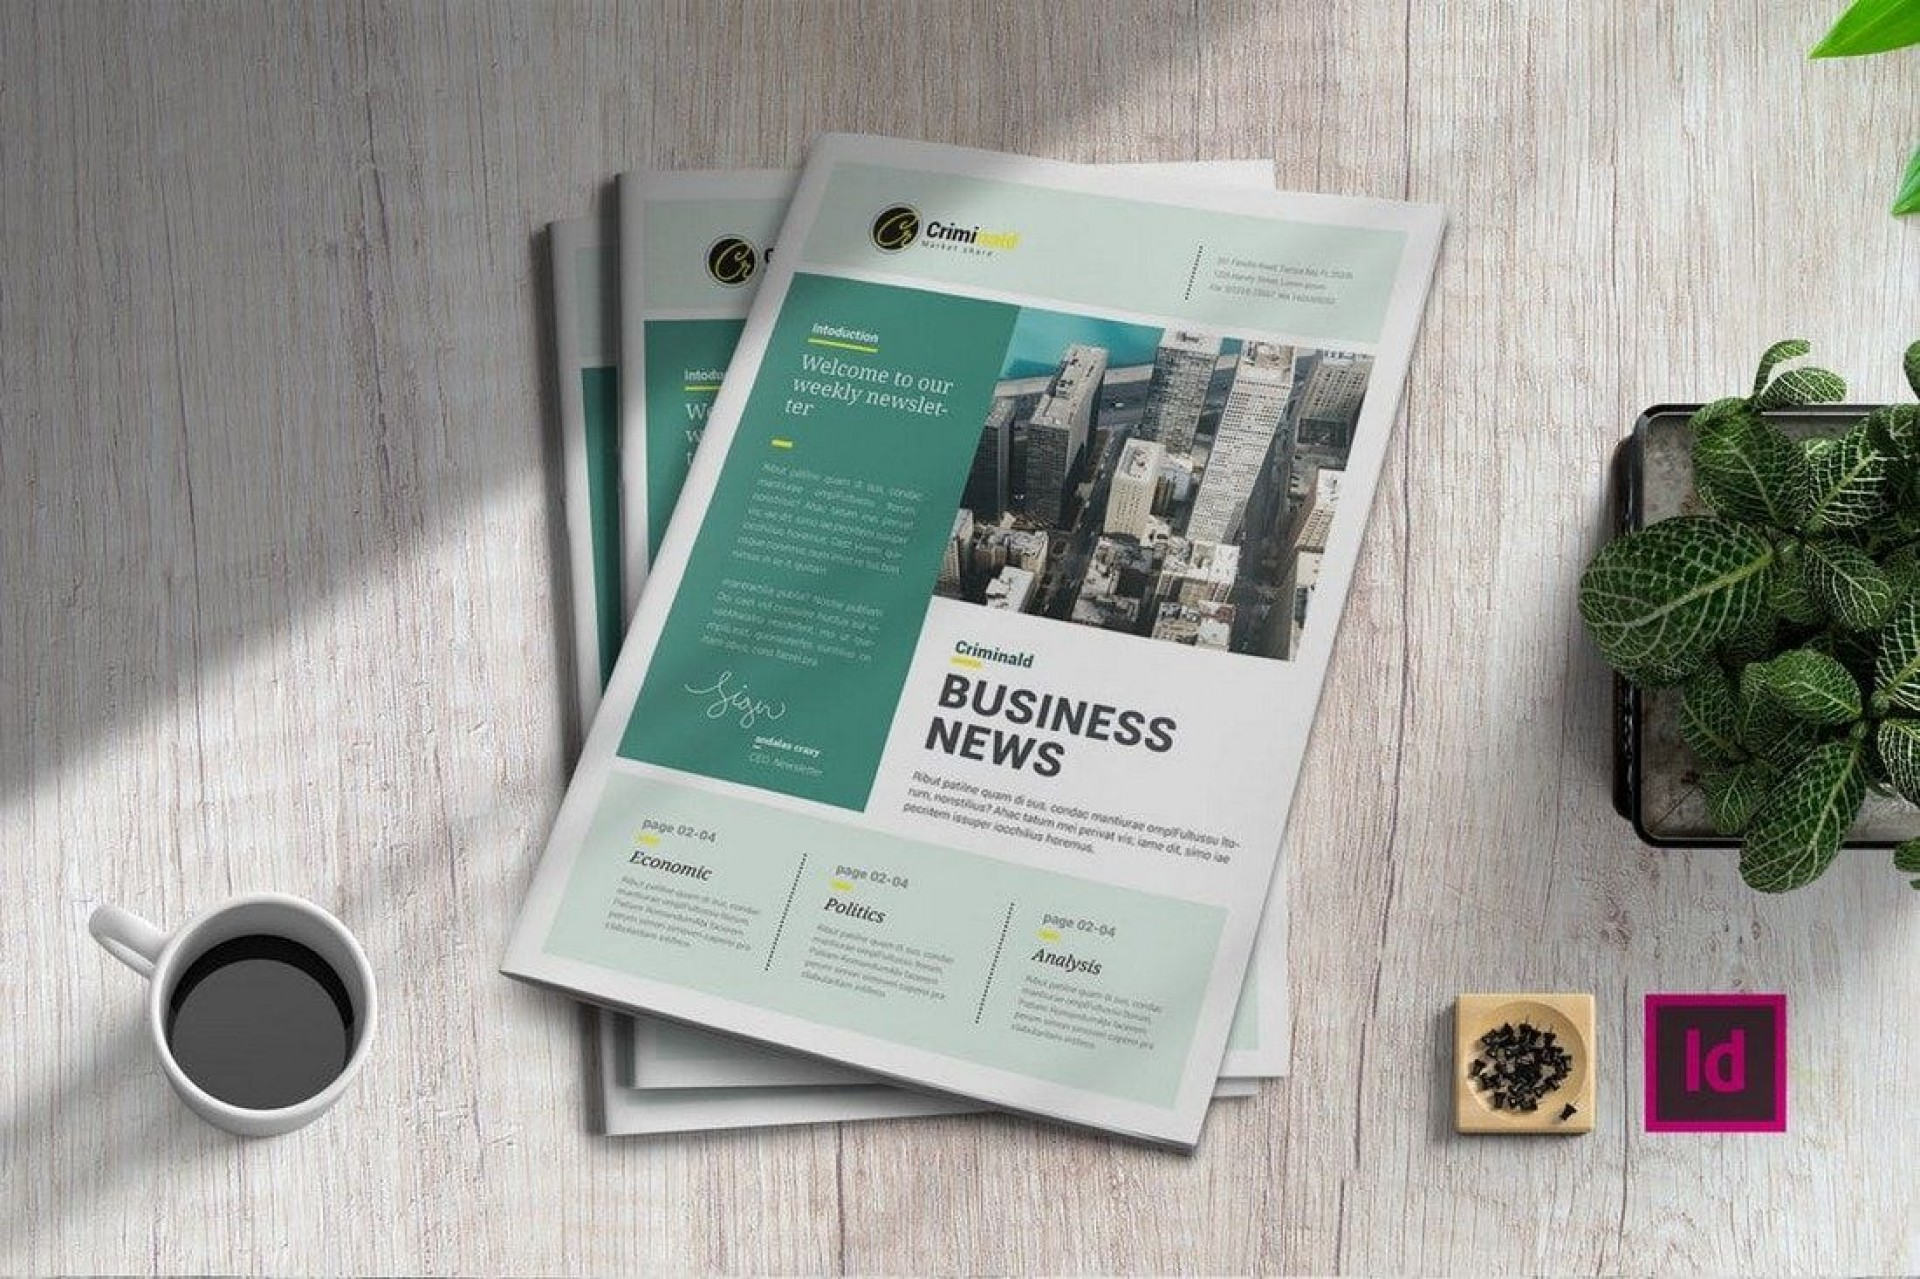 000 Unbelievable Indesign Newsletter Template Free Sample  Cs6 Email Adobe Download1920